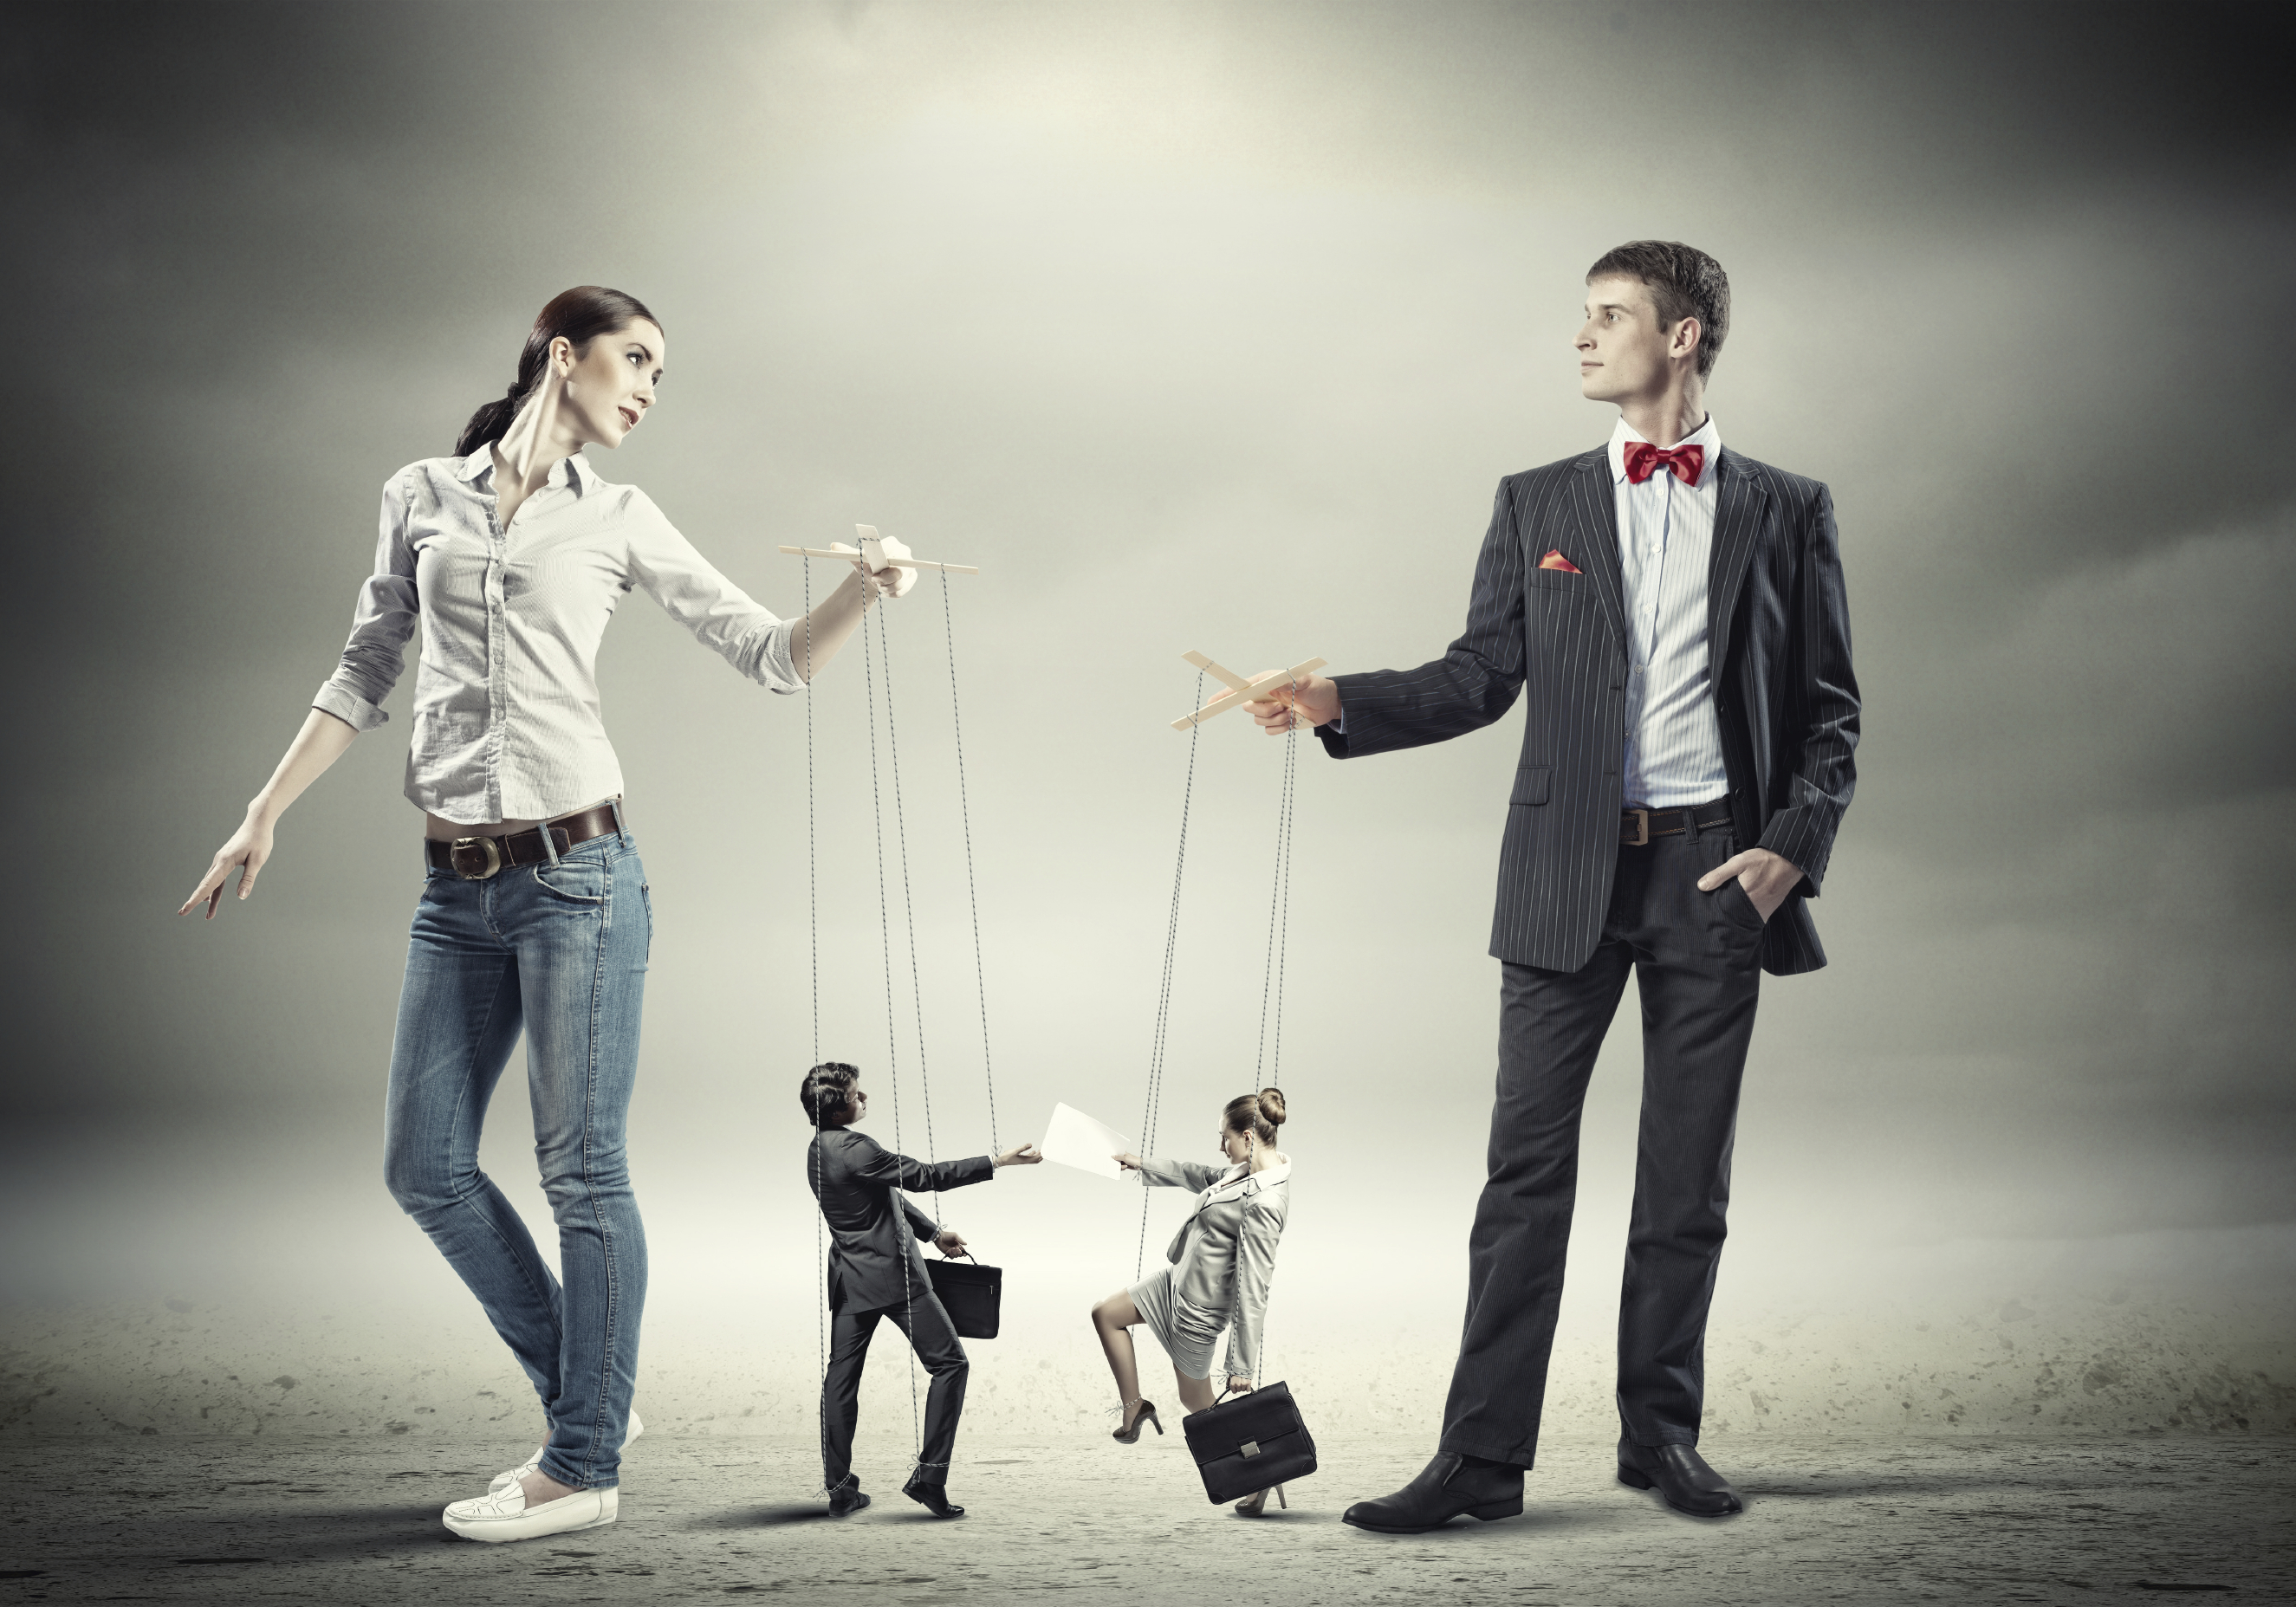 micromanaging employees in the workplace